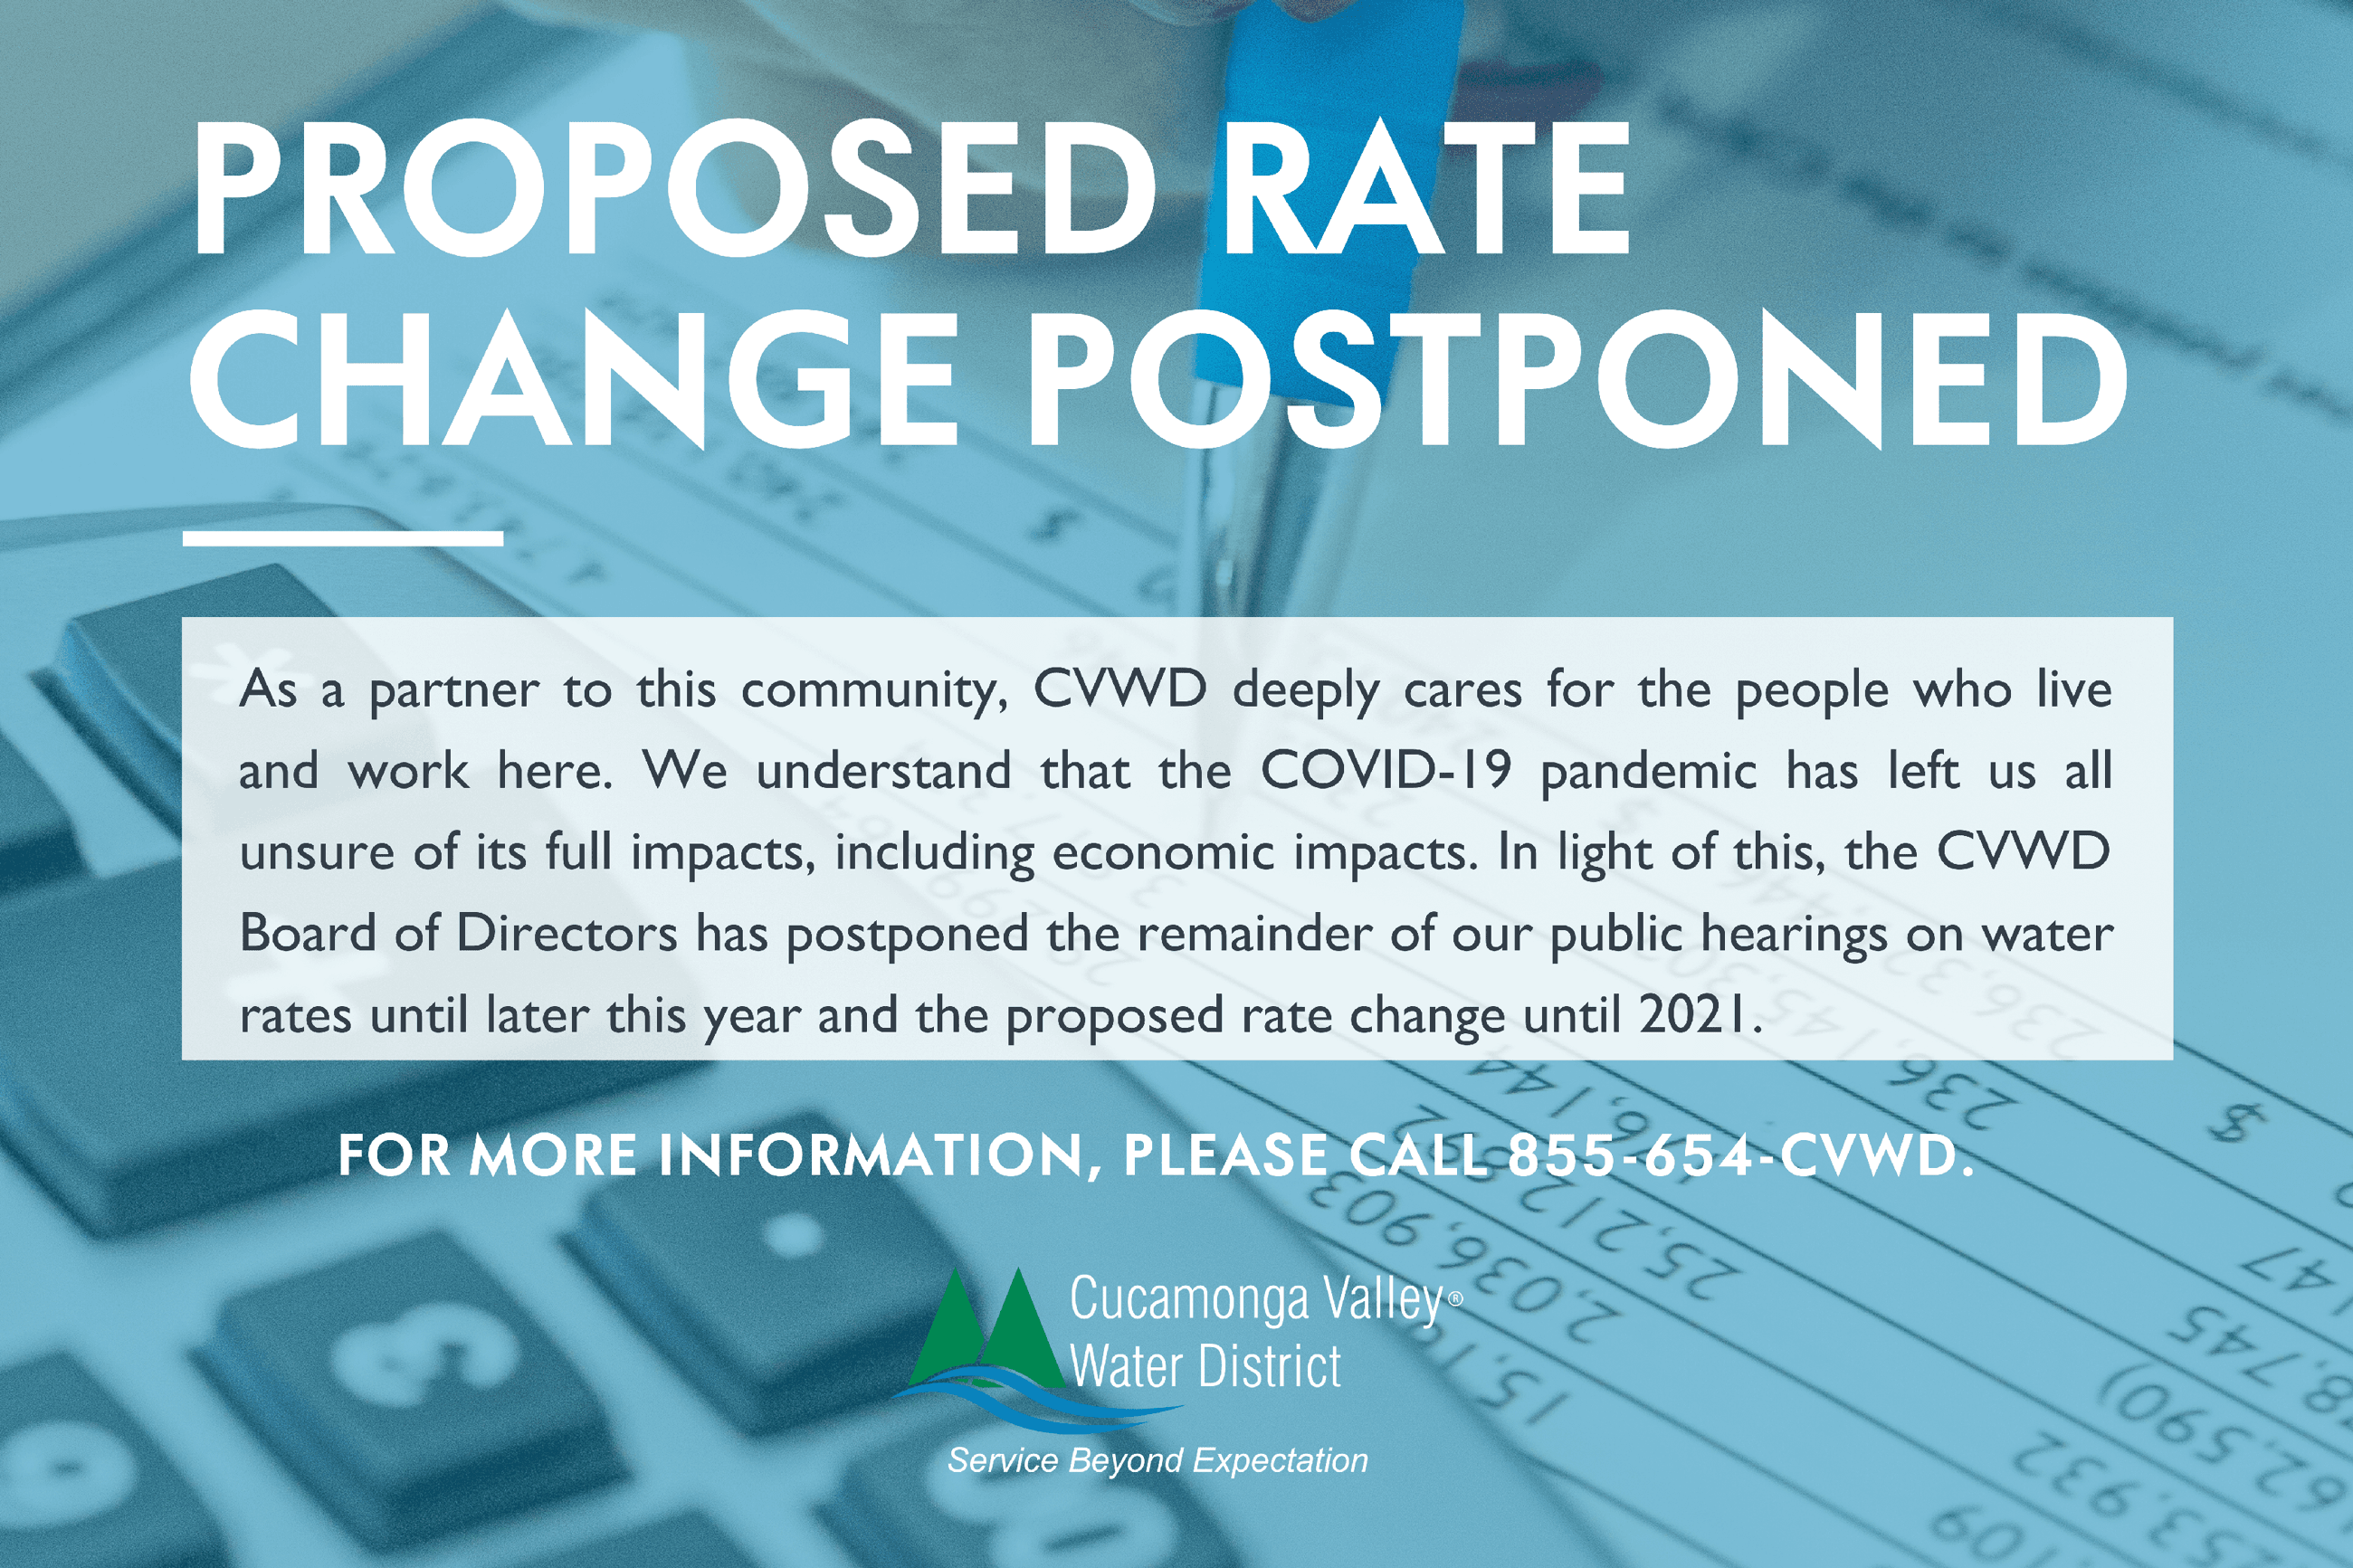 Proposed Rate Change Postponed